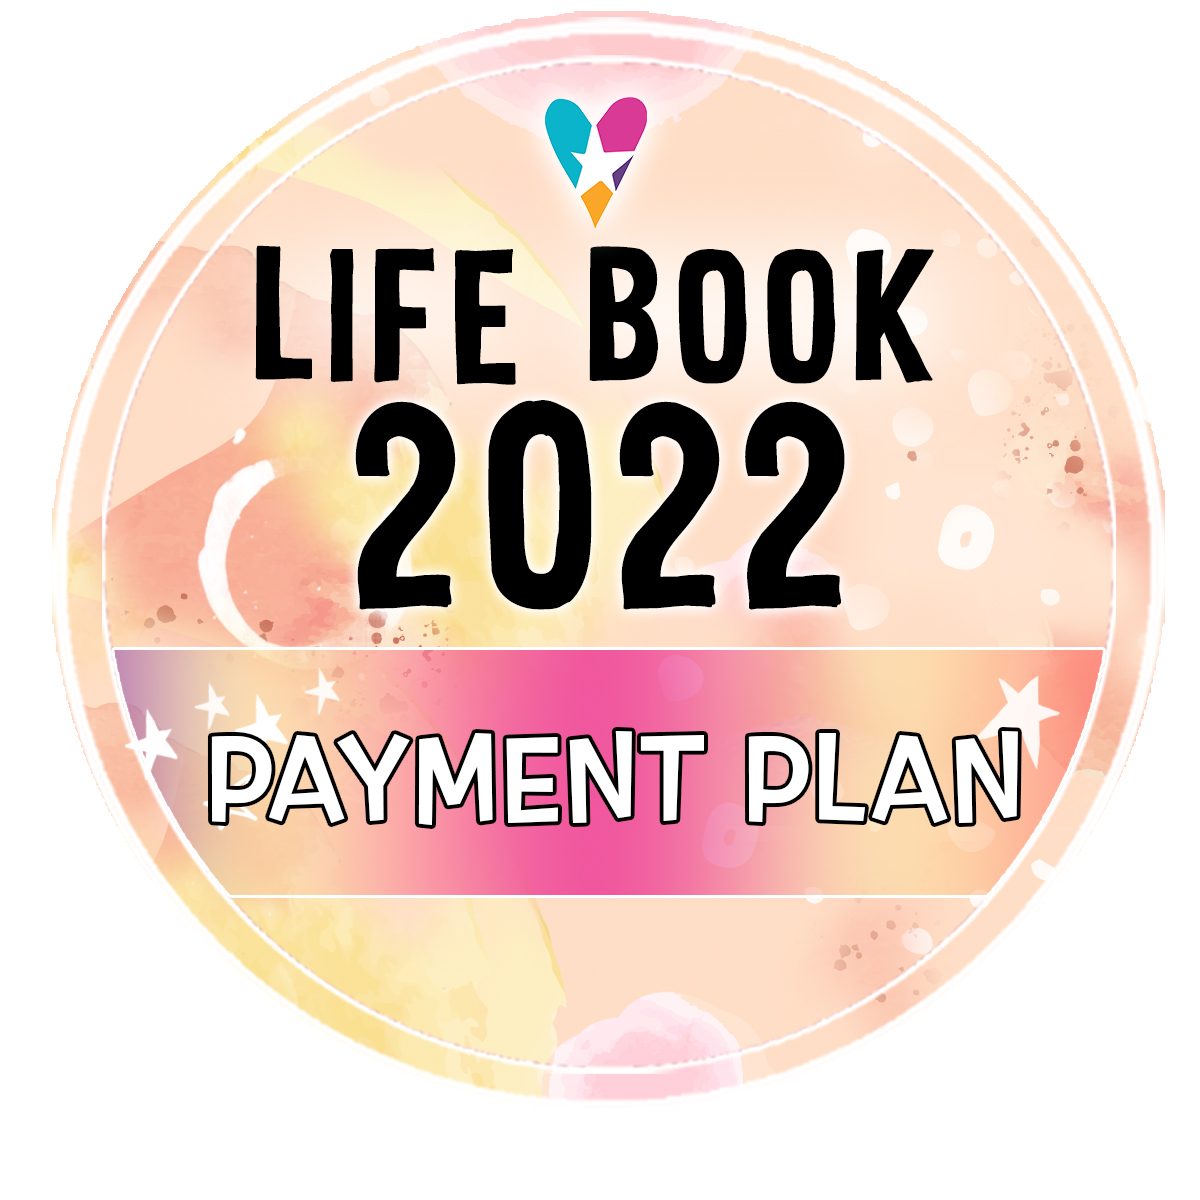 Life Book 2022 - Payment Plan - Basic Package